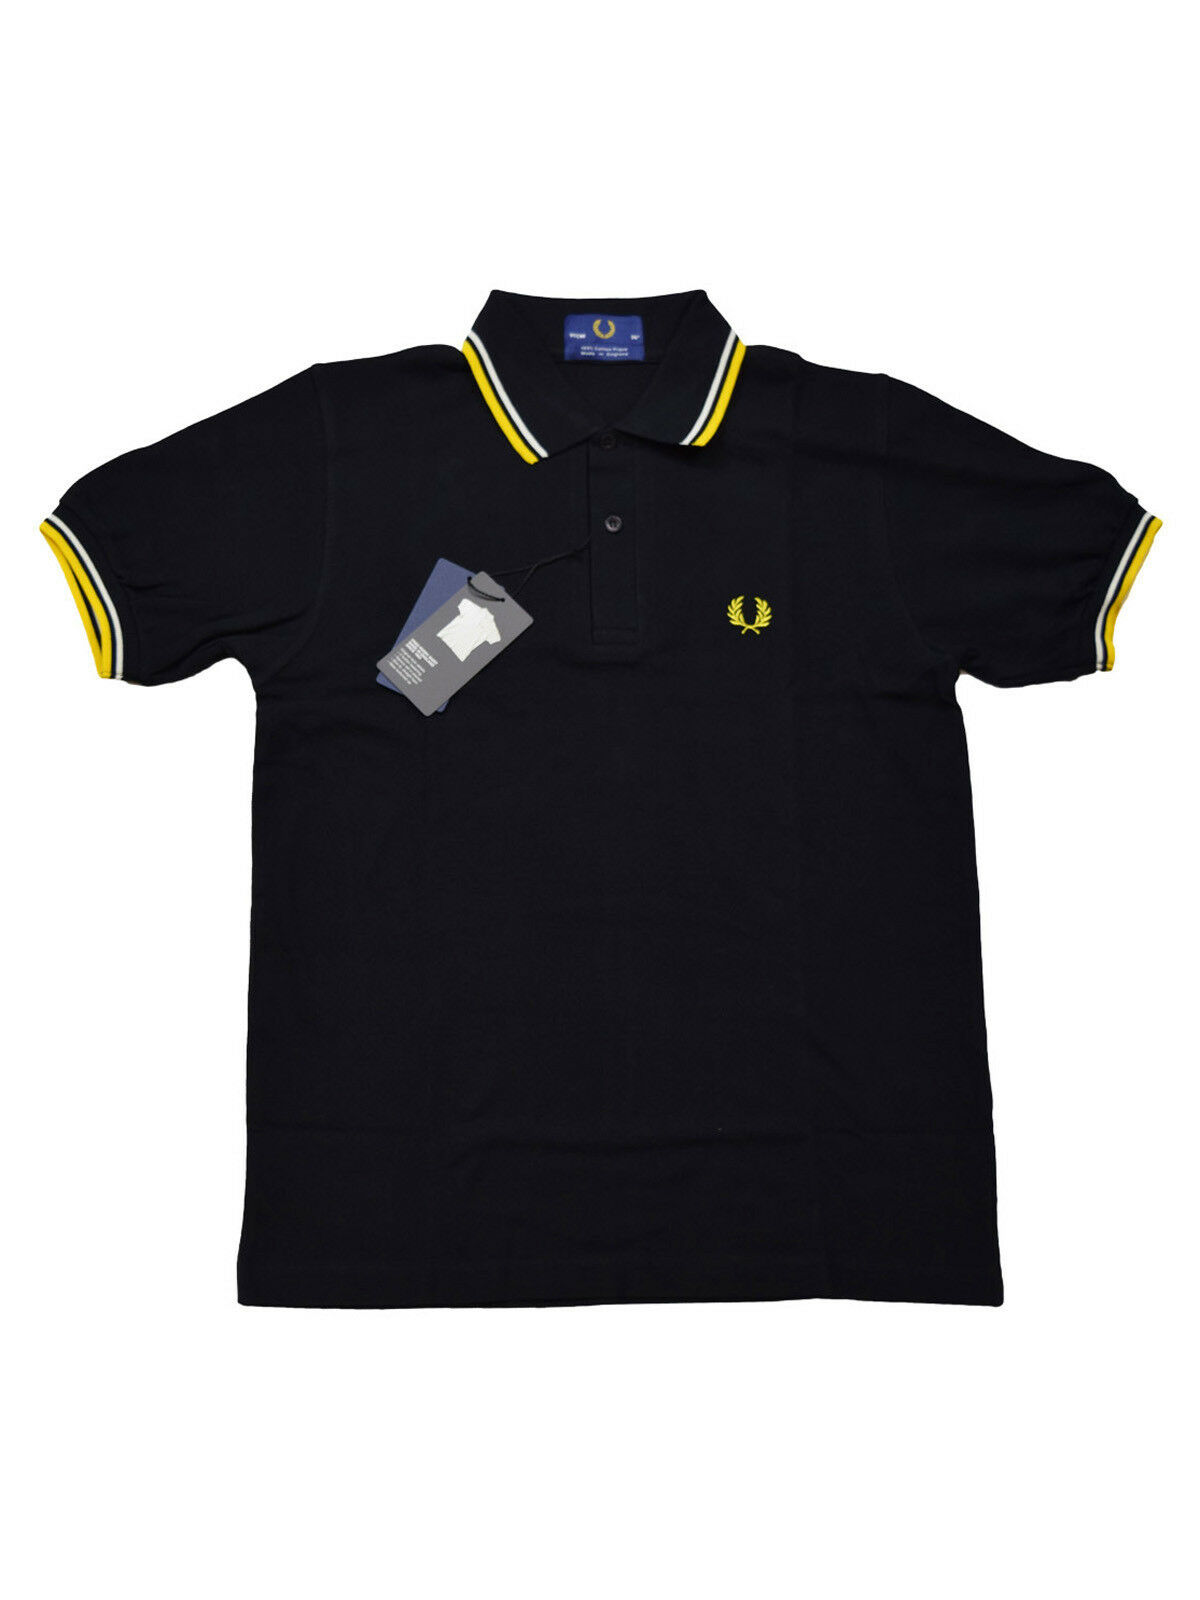 Frot Perry Polo Shirt M12 220 Made In England Schwarz   Weiß   Gelb   5448